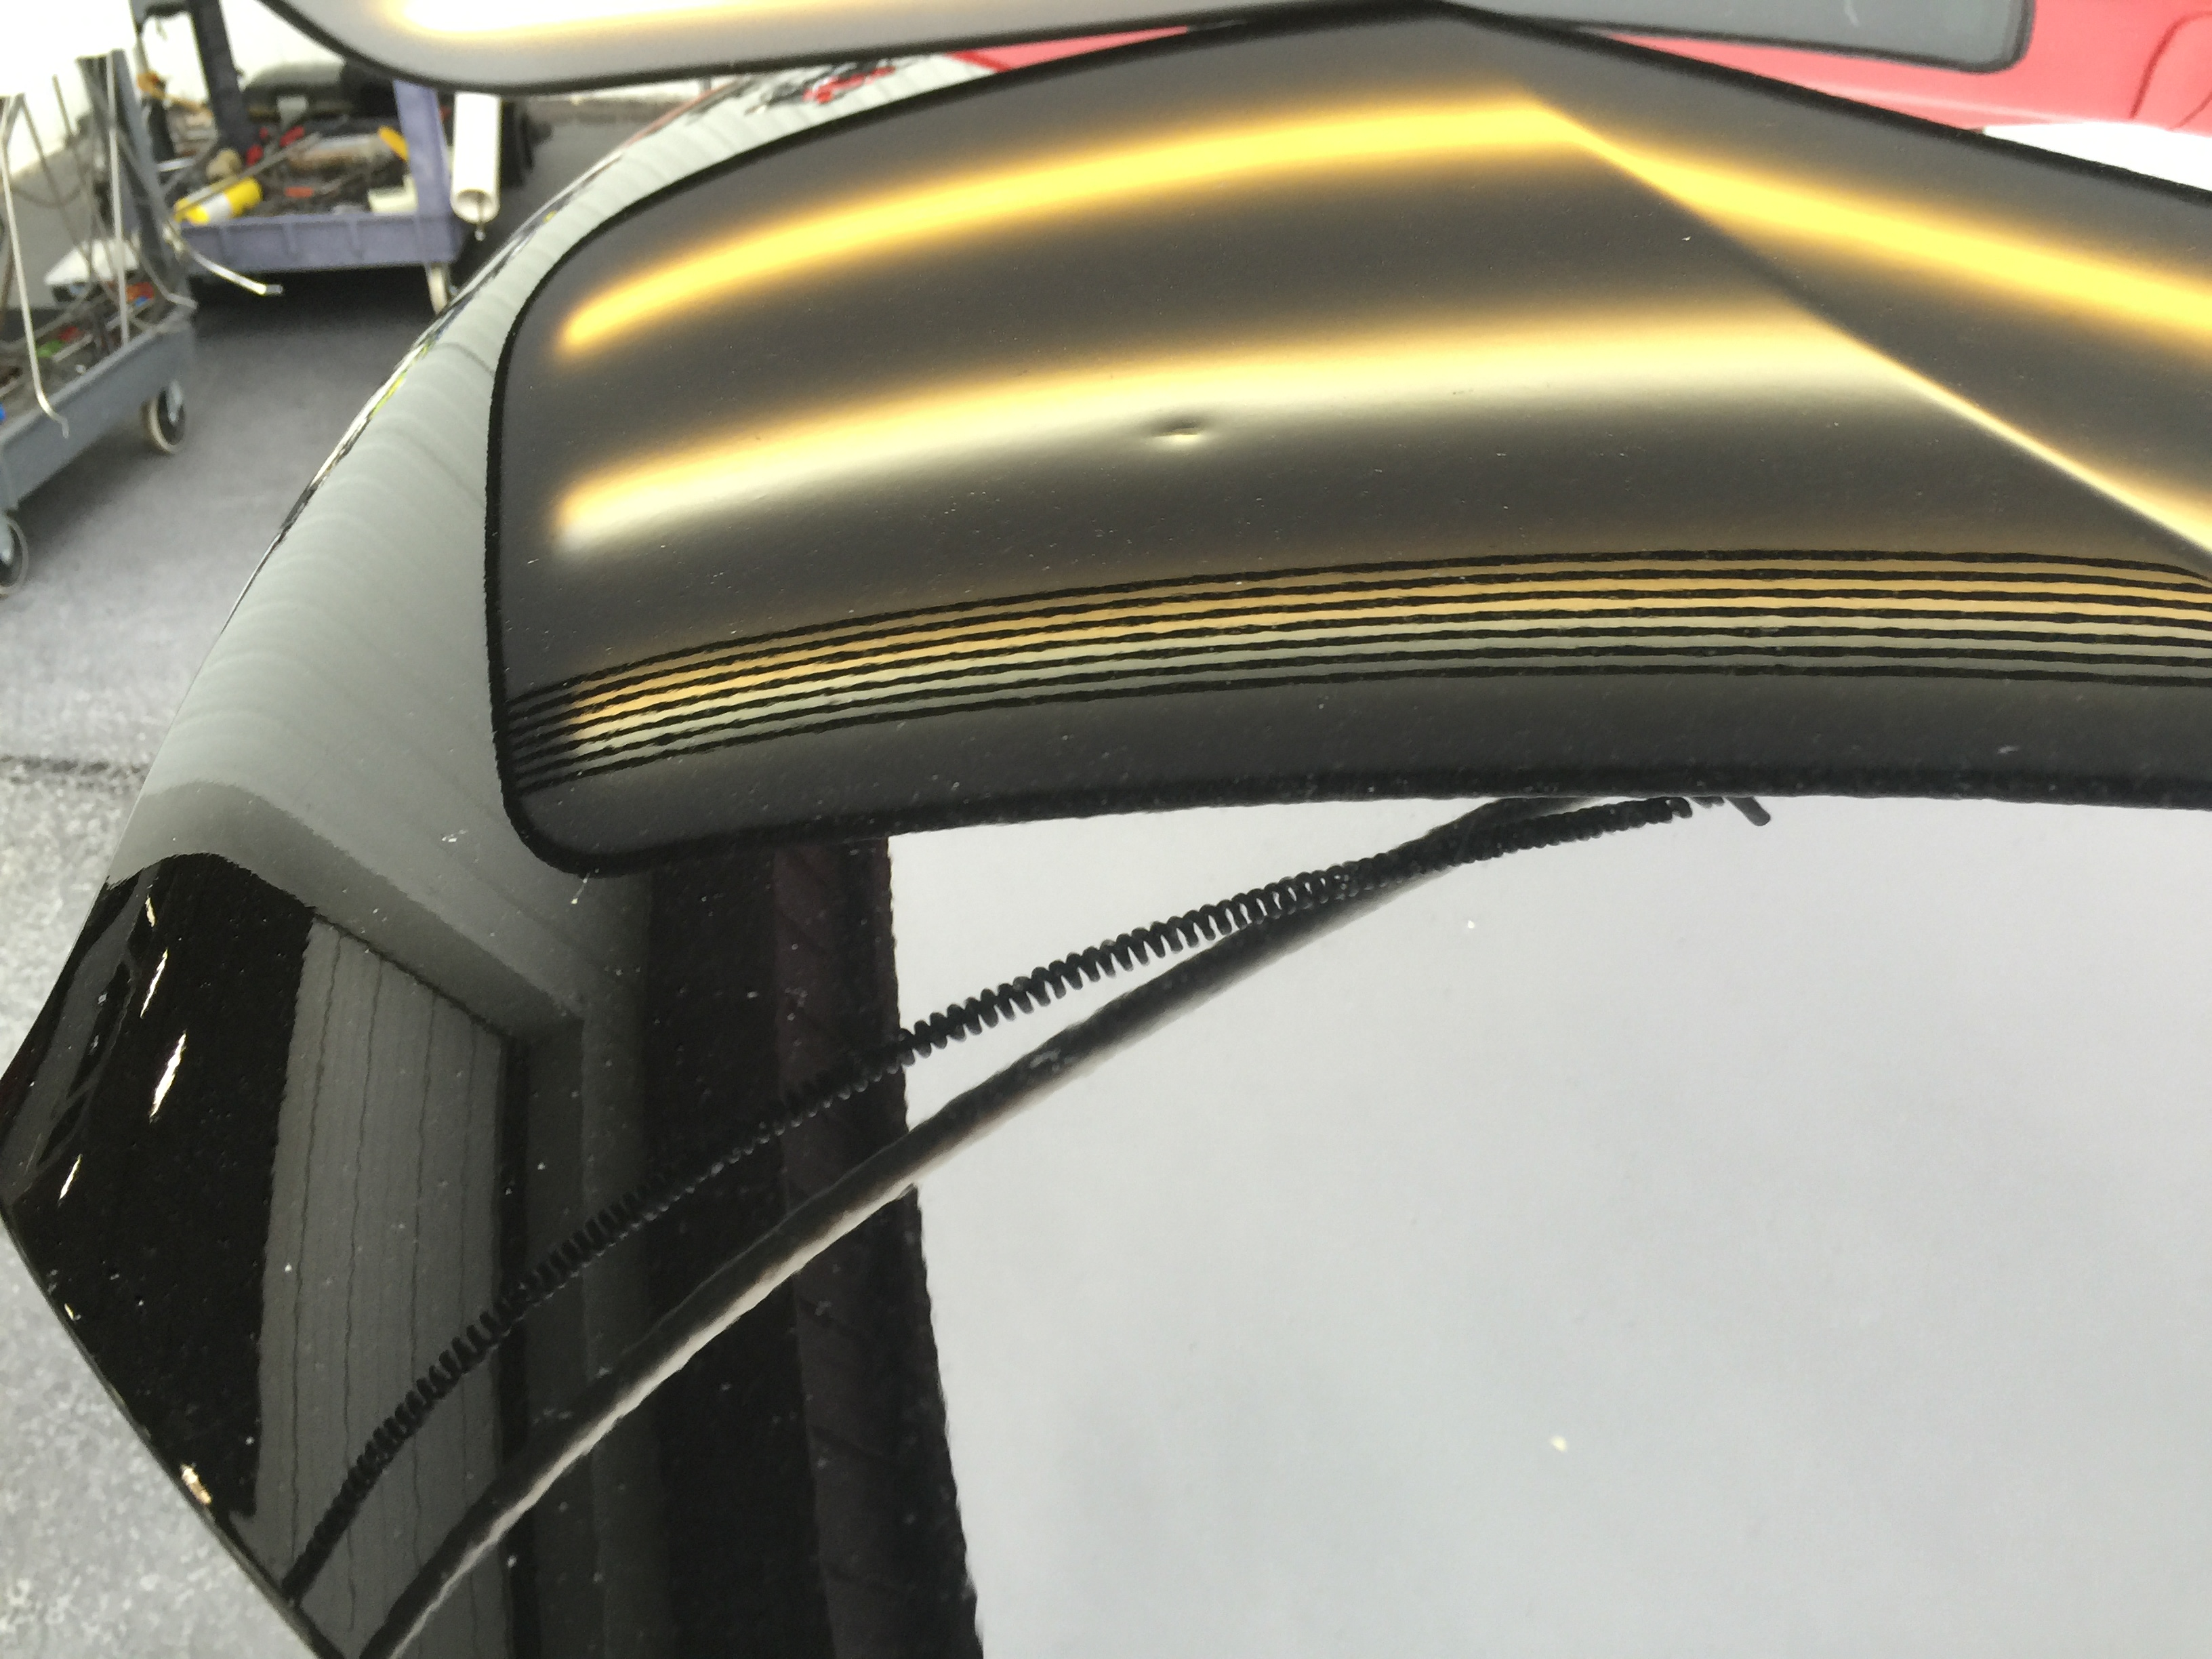 2012 Black Veloster hood dent. Work was done by Michael Bocek from 217dent.com. Go to http://217dent.com an estimate, or for more information about paintless dent removal.